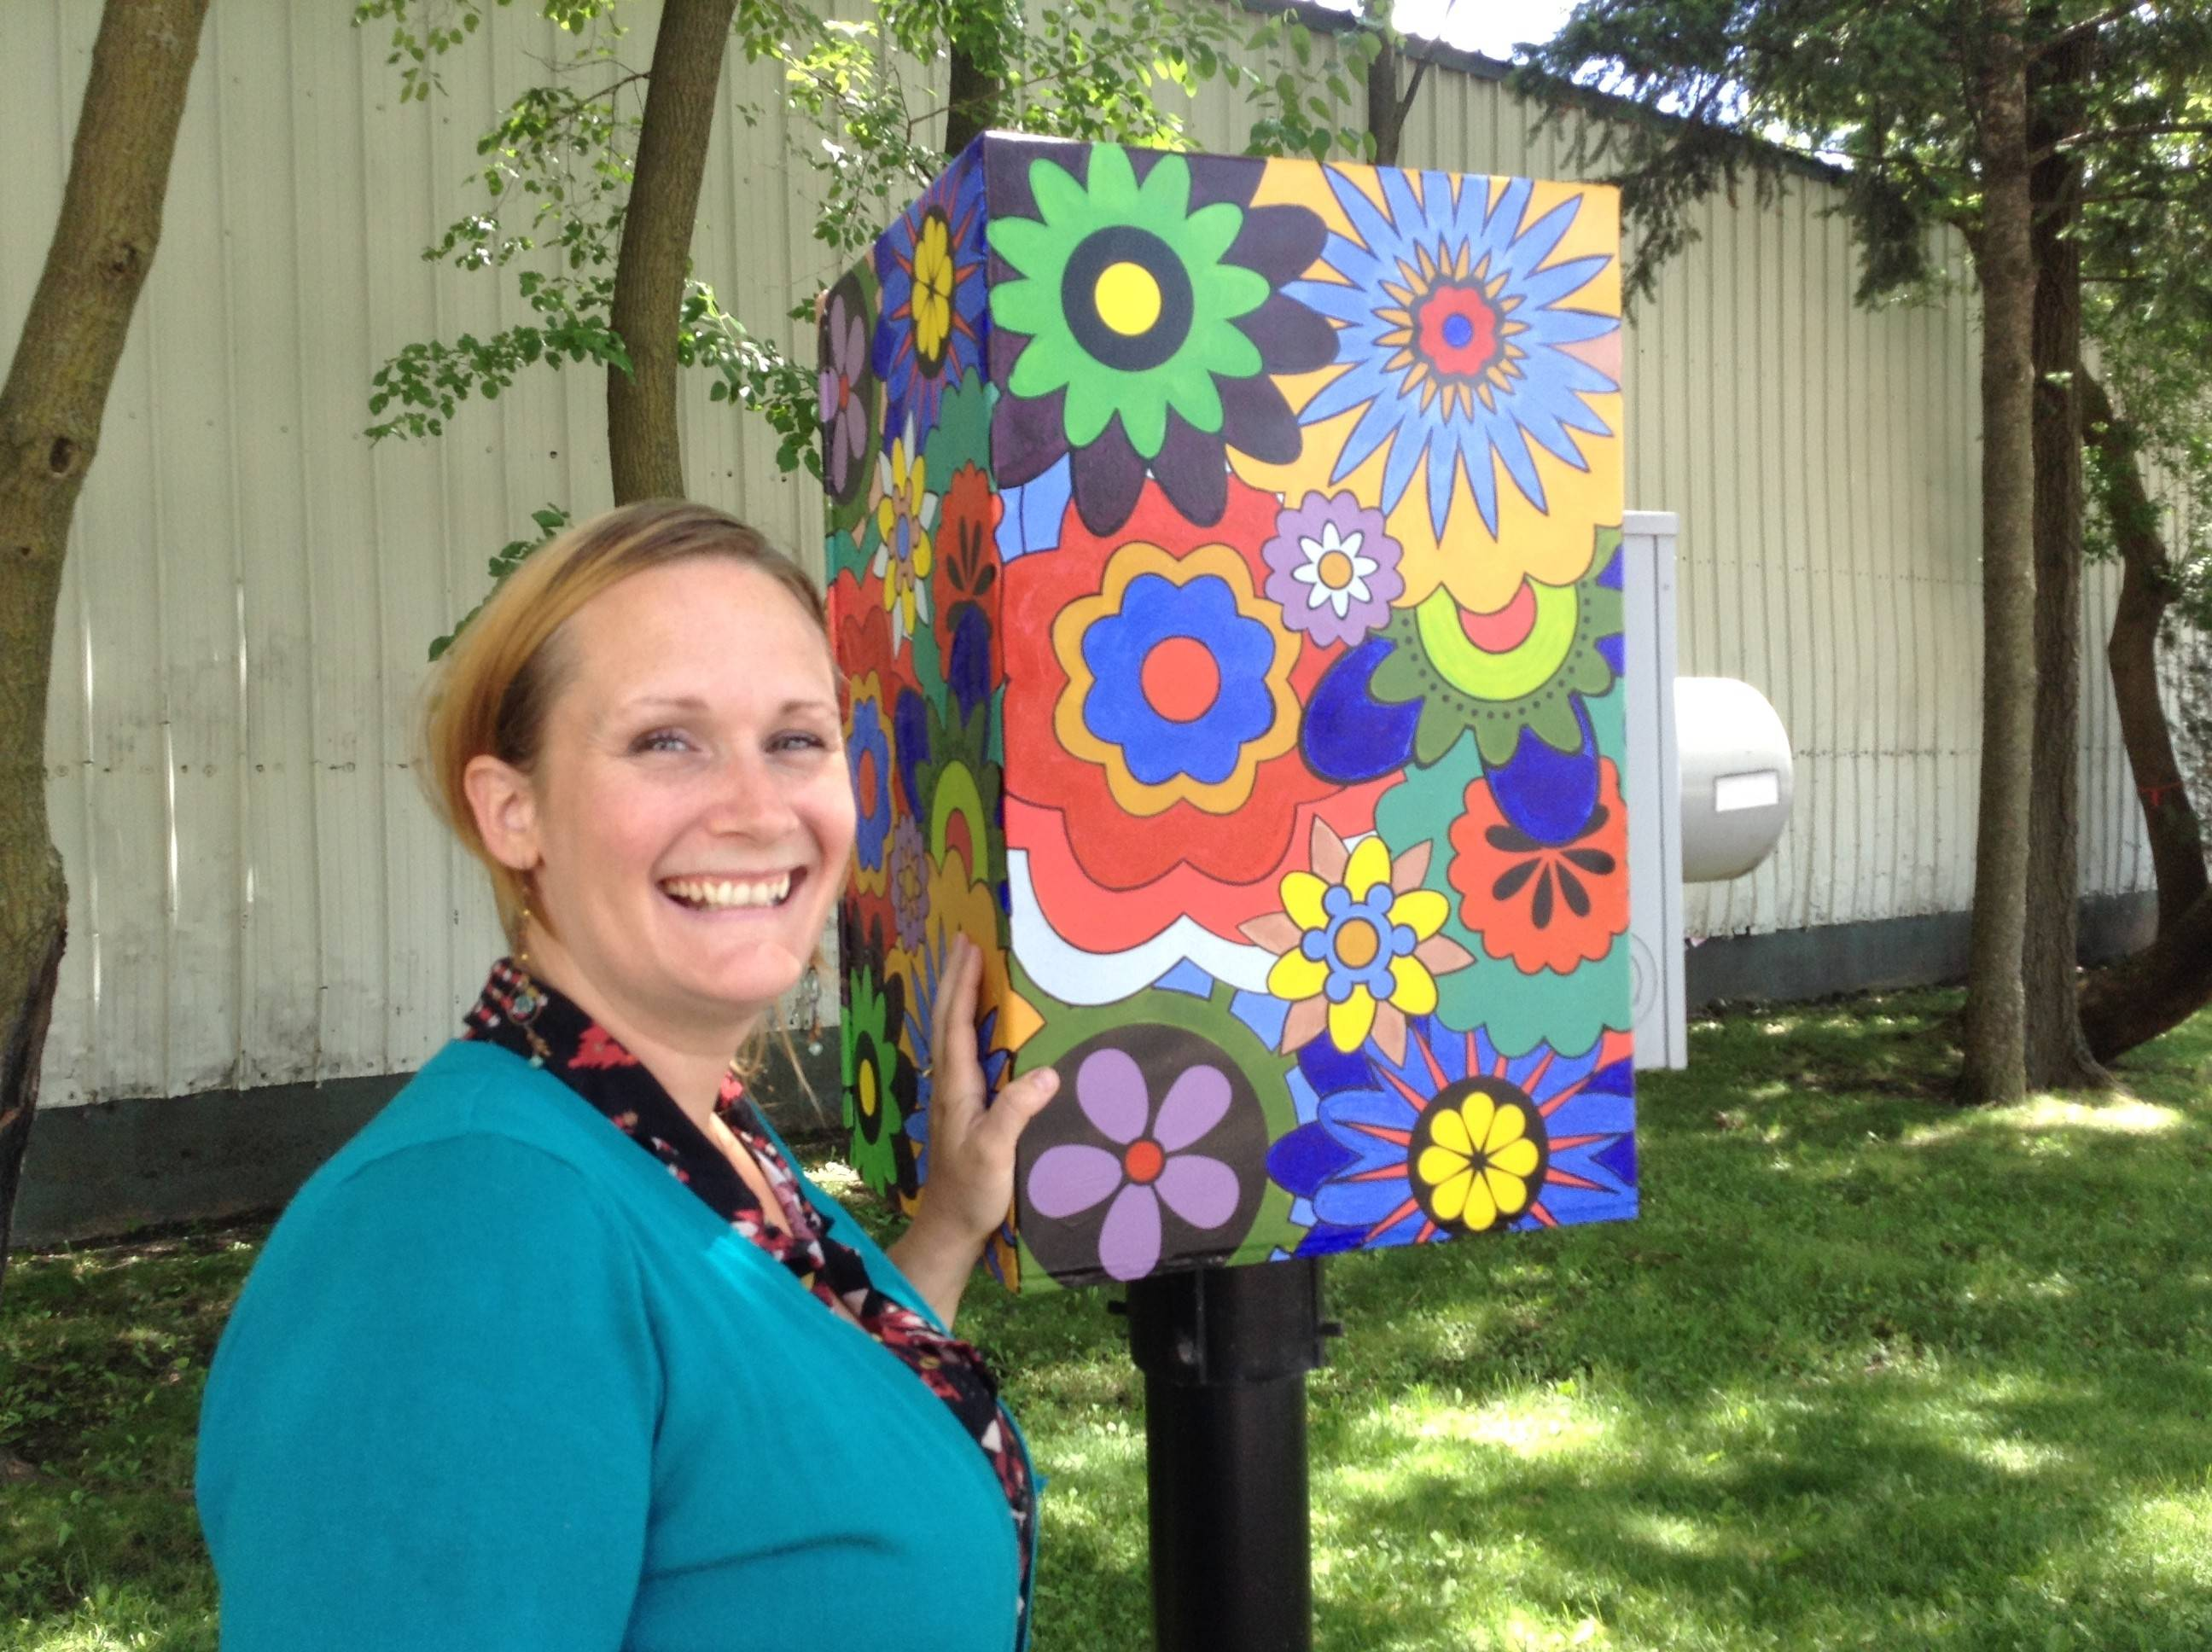 Artist Jen Kehrer talks about the design she chose for a public art project in Mundelein.